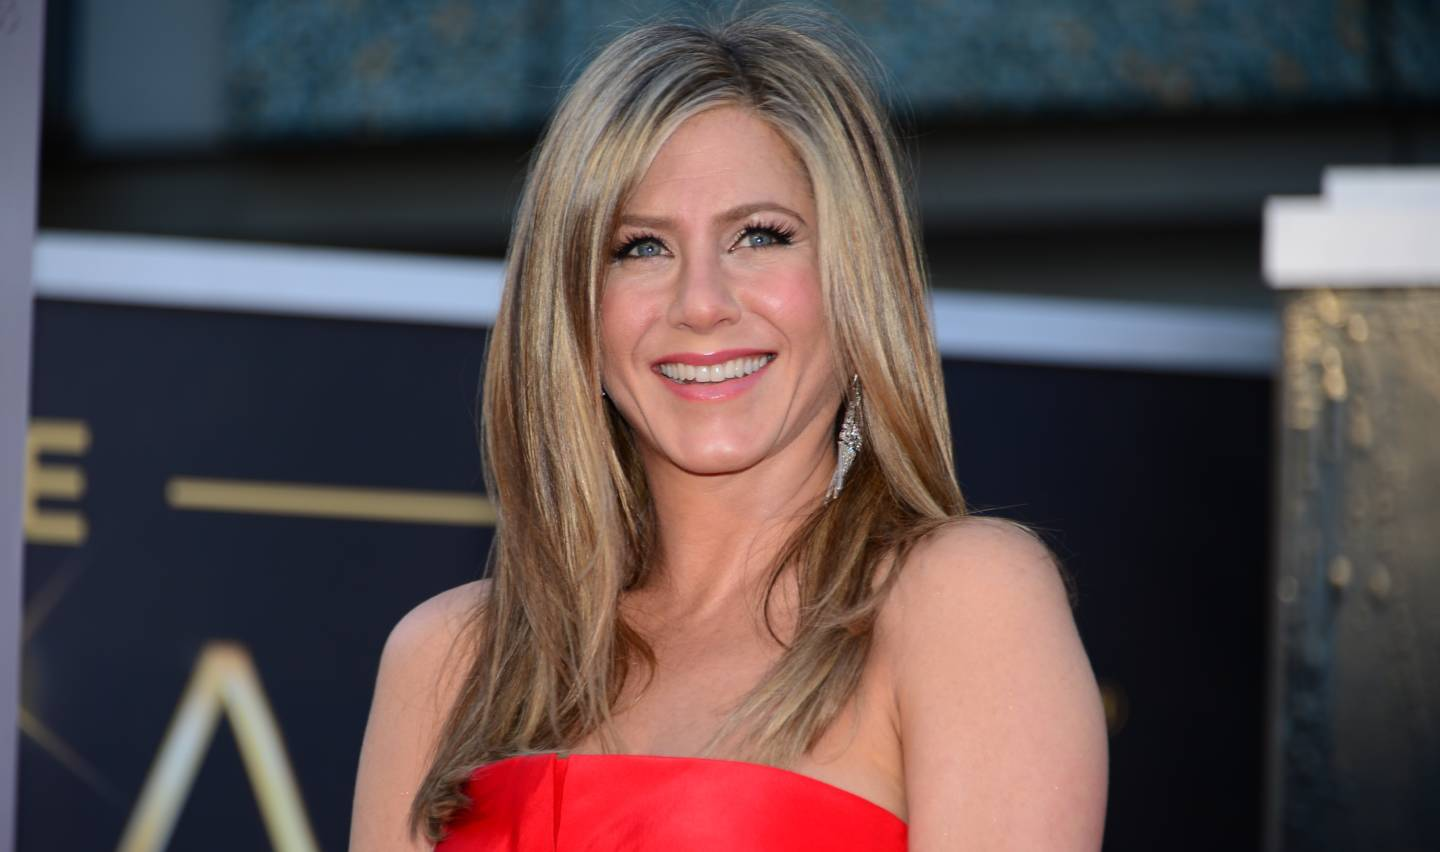 Jennifer Aniston: I'm Not Pregnant, and Y'all Need To Get a Life